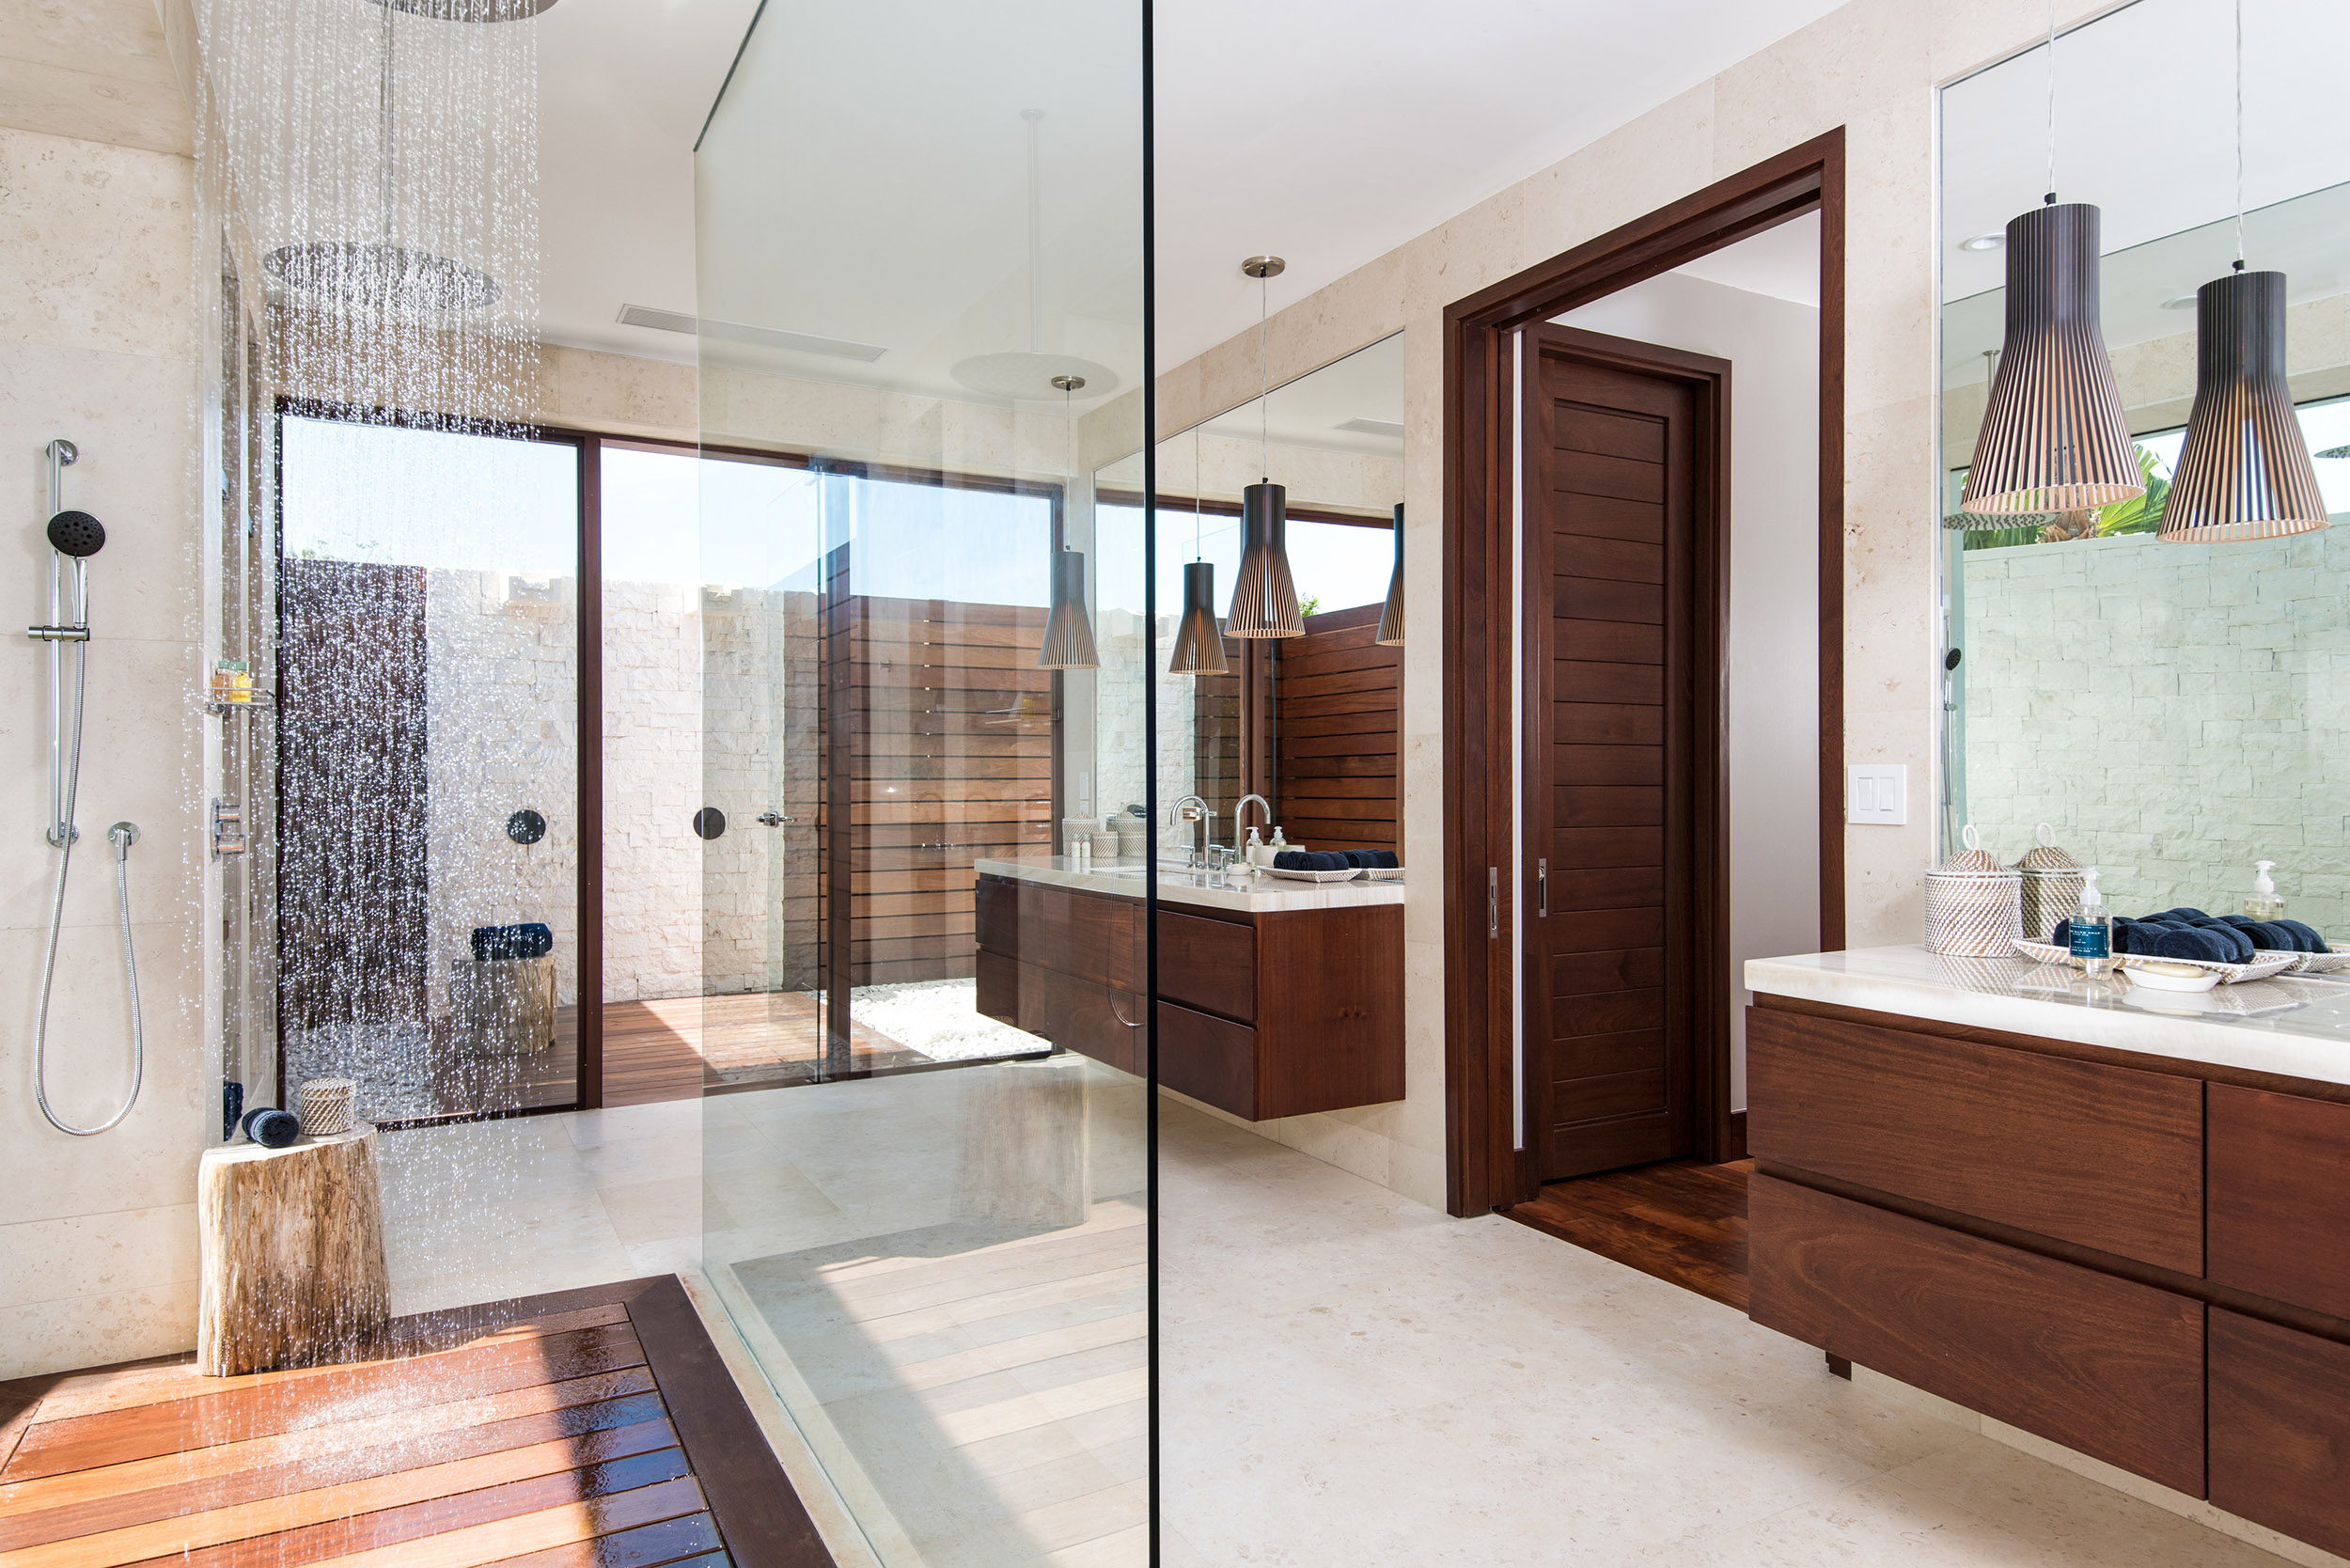 Hawksbill - view of the master bathroom with outdoor shower area